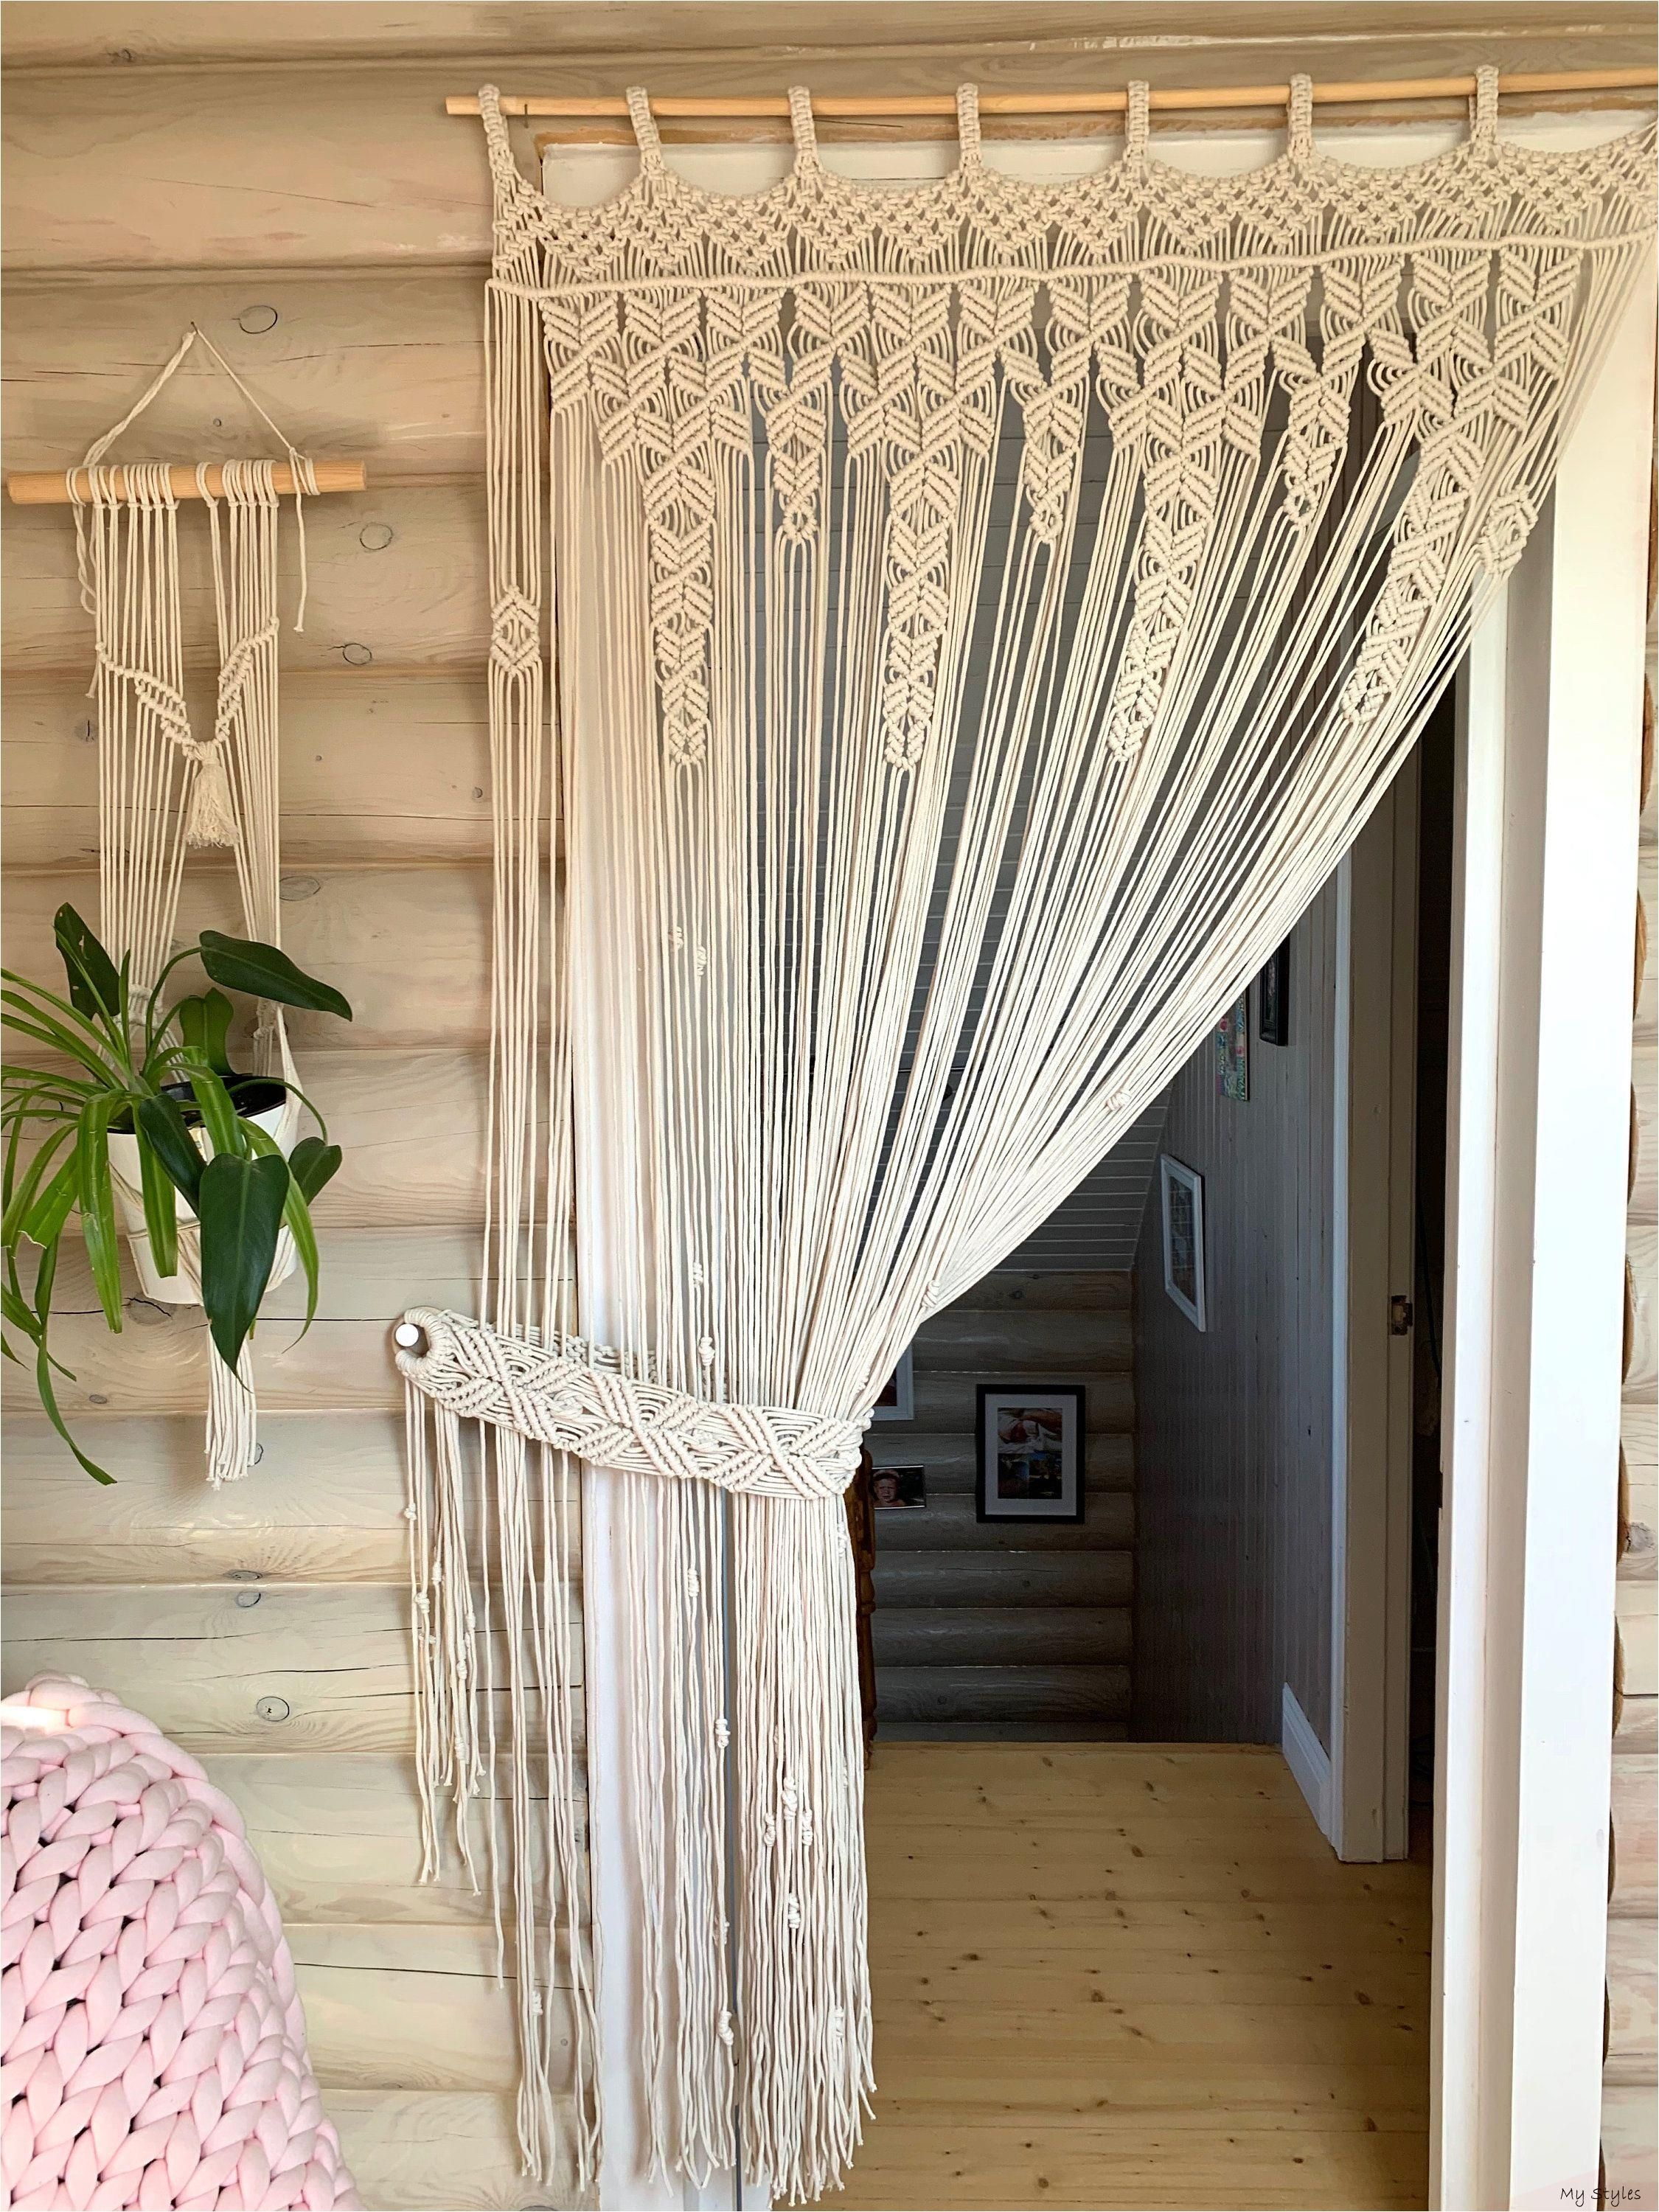 This Pin Was Discovered By Chelsea Hodsdon Discover And Save Your Own Pins On Pinterest Patterns In 2020 Macrame Door Curtain Macrame Curtain Macrame Wall Hanging